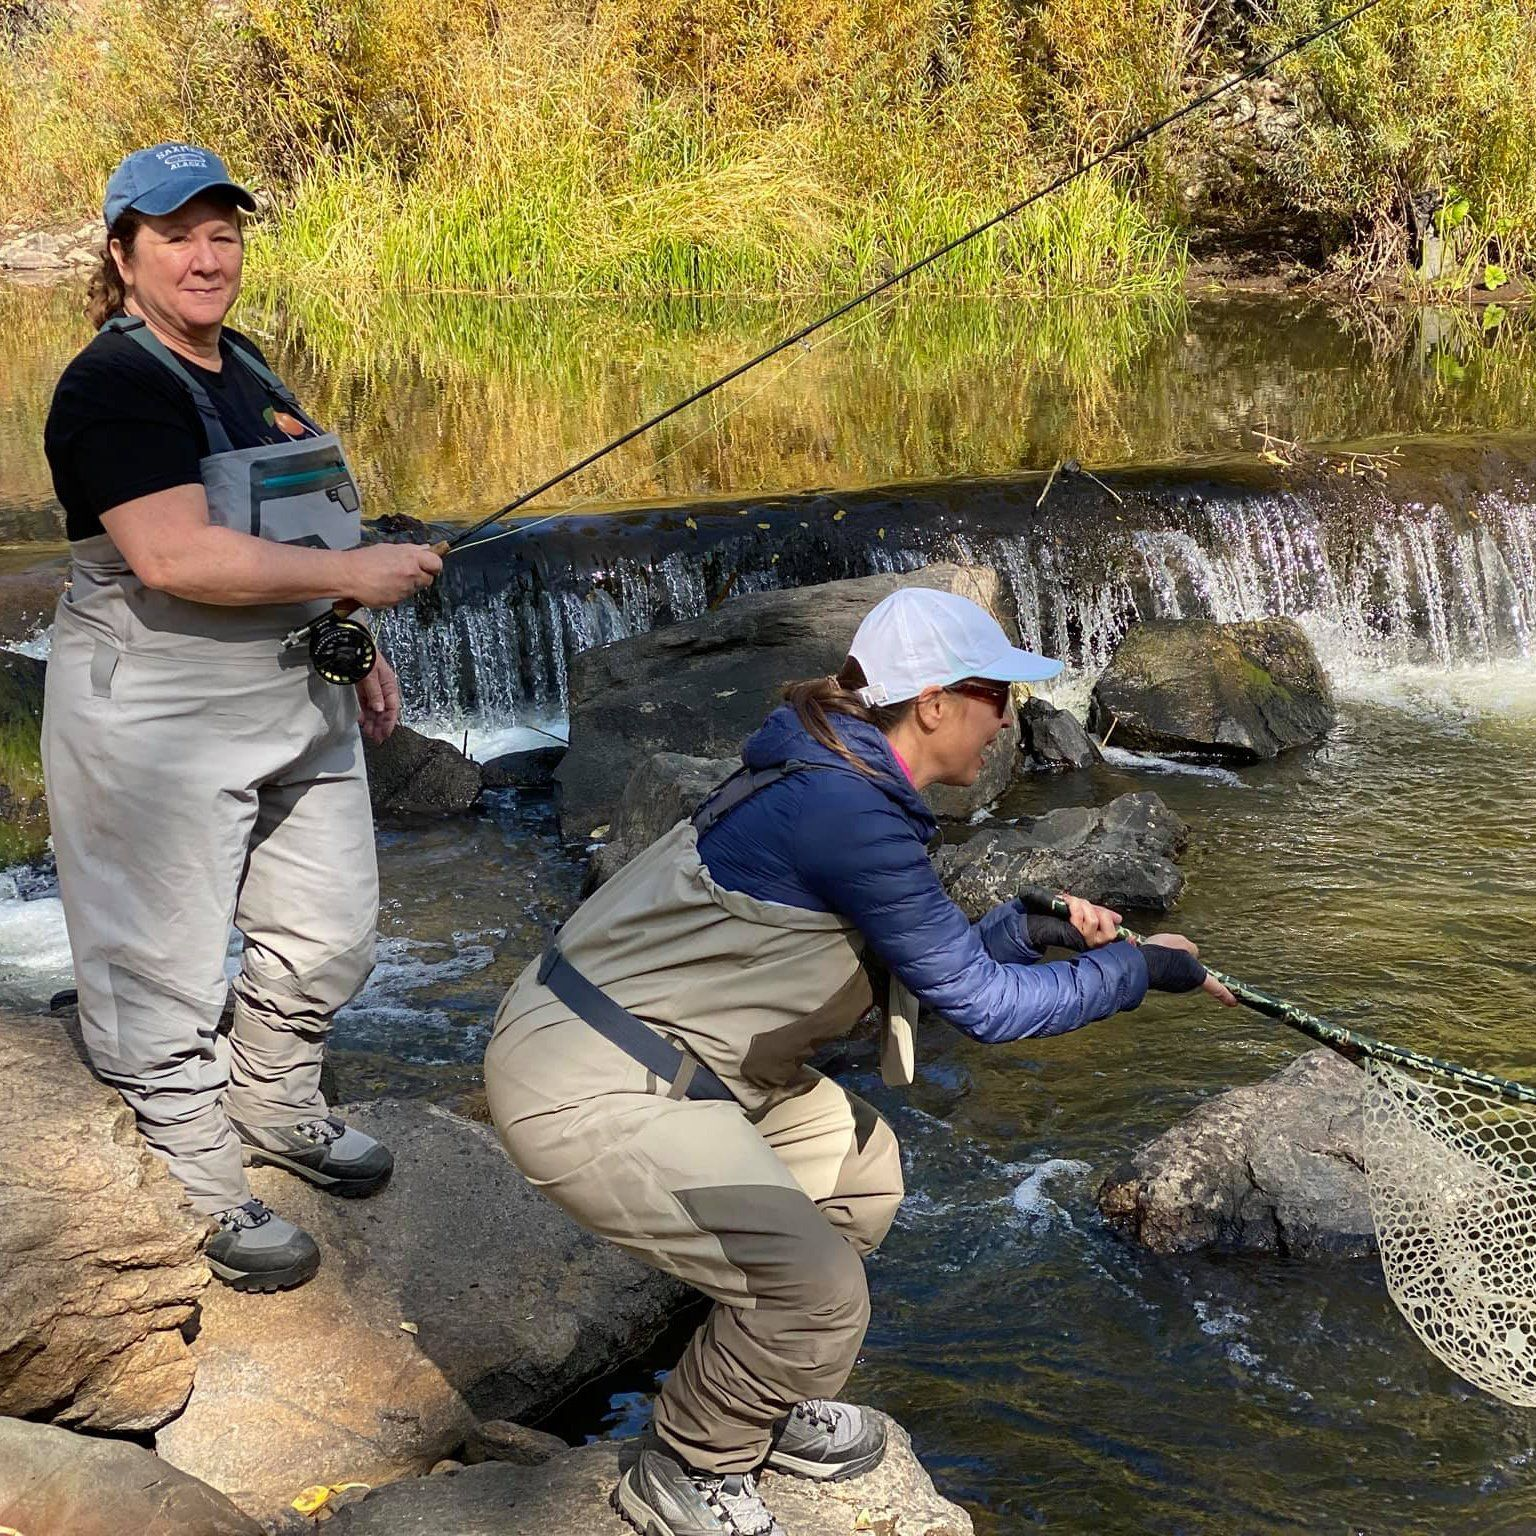 Lessons I Learned From My First Fly Fishing Experience Fly Fishing Fishing Techniques Fishing Trip